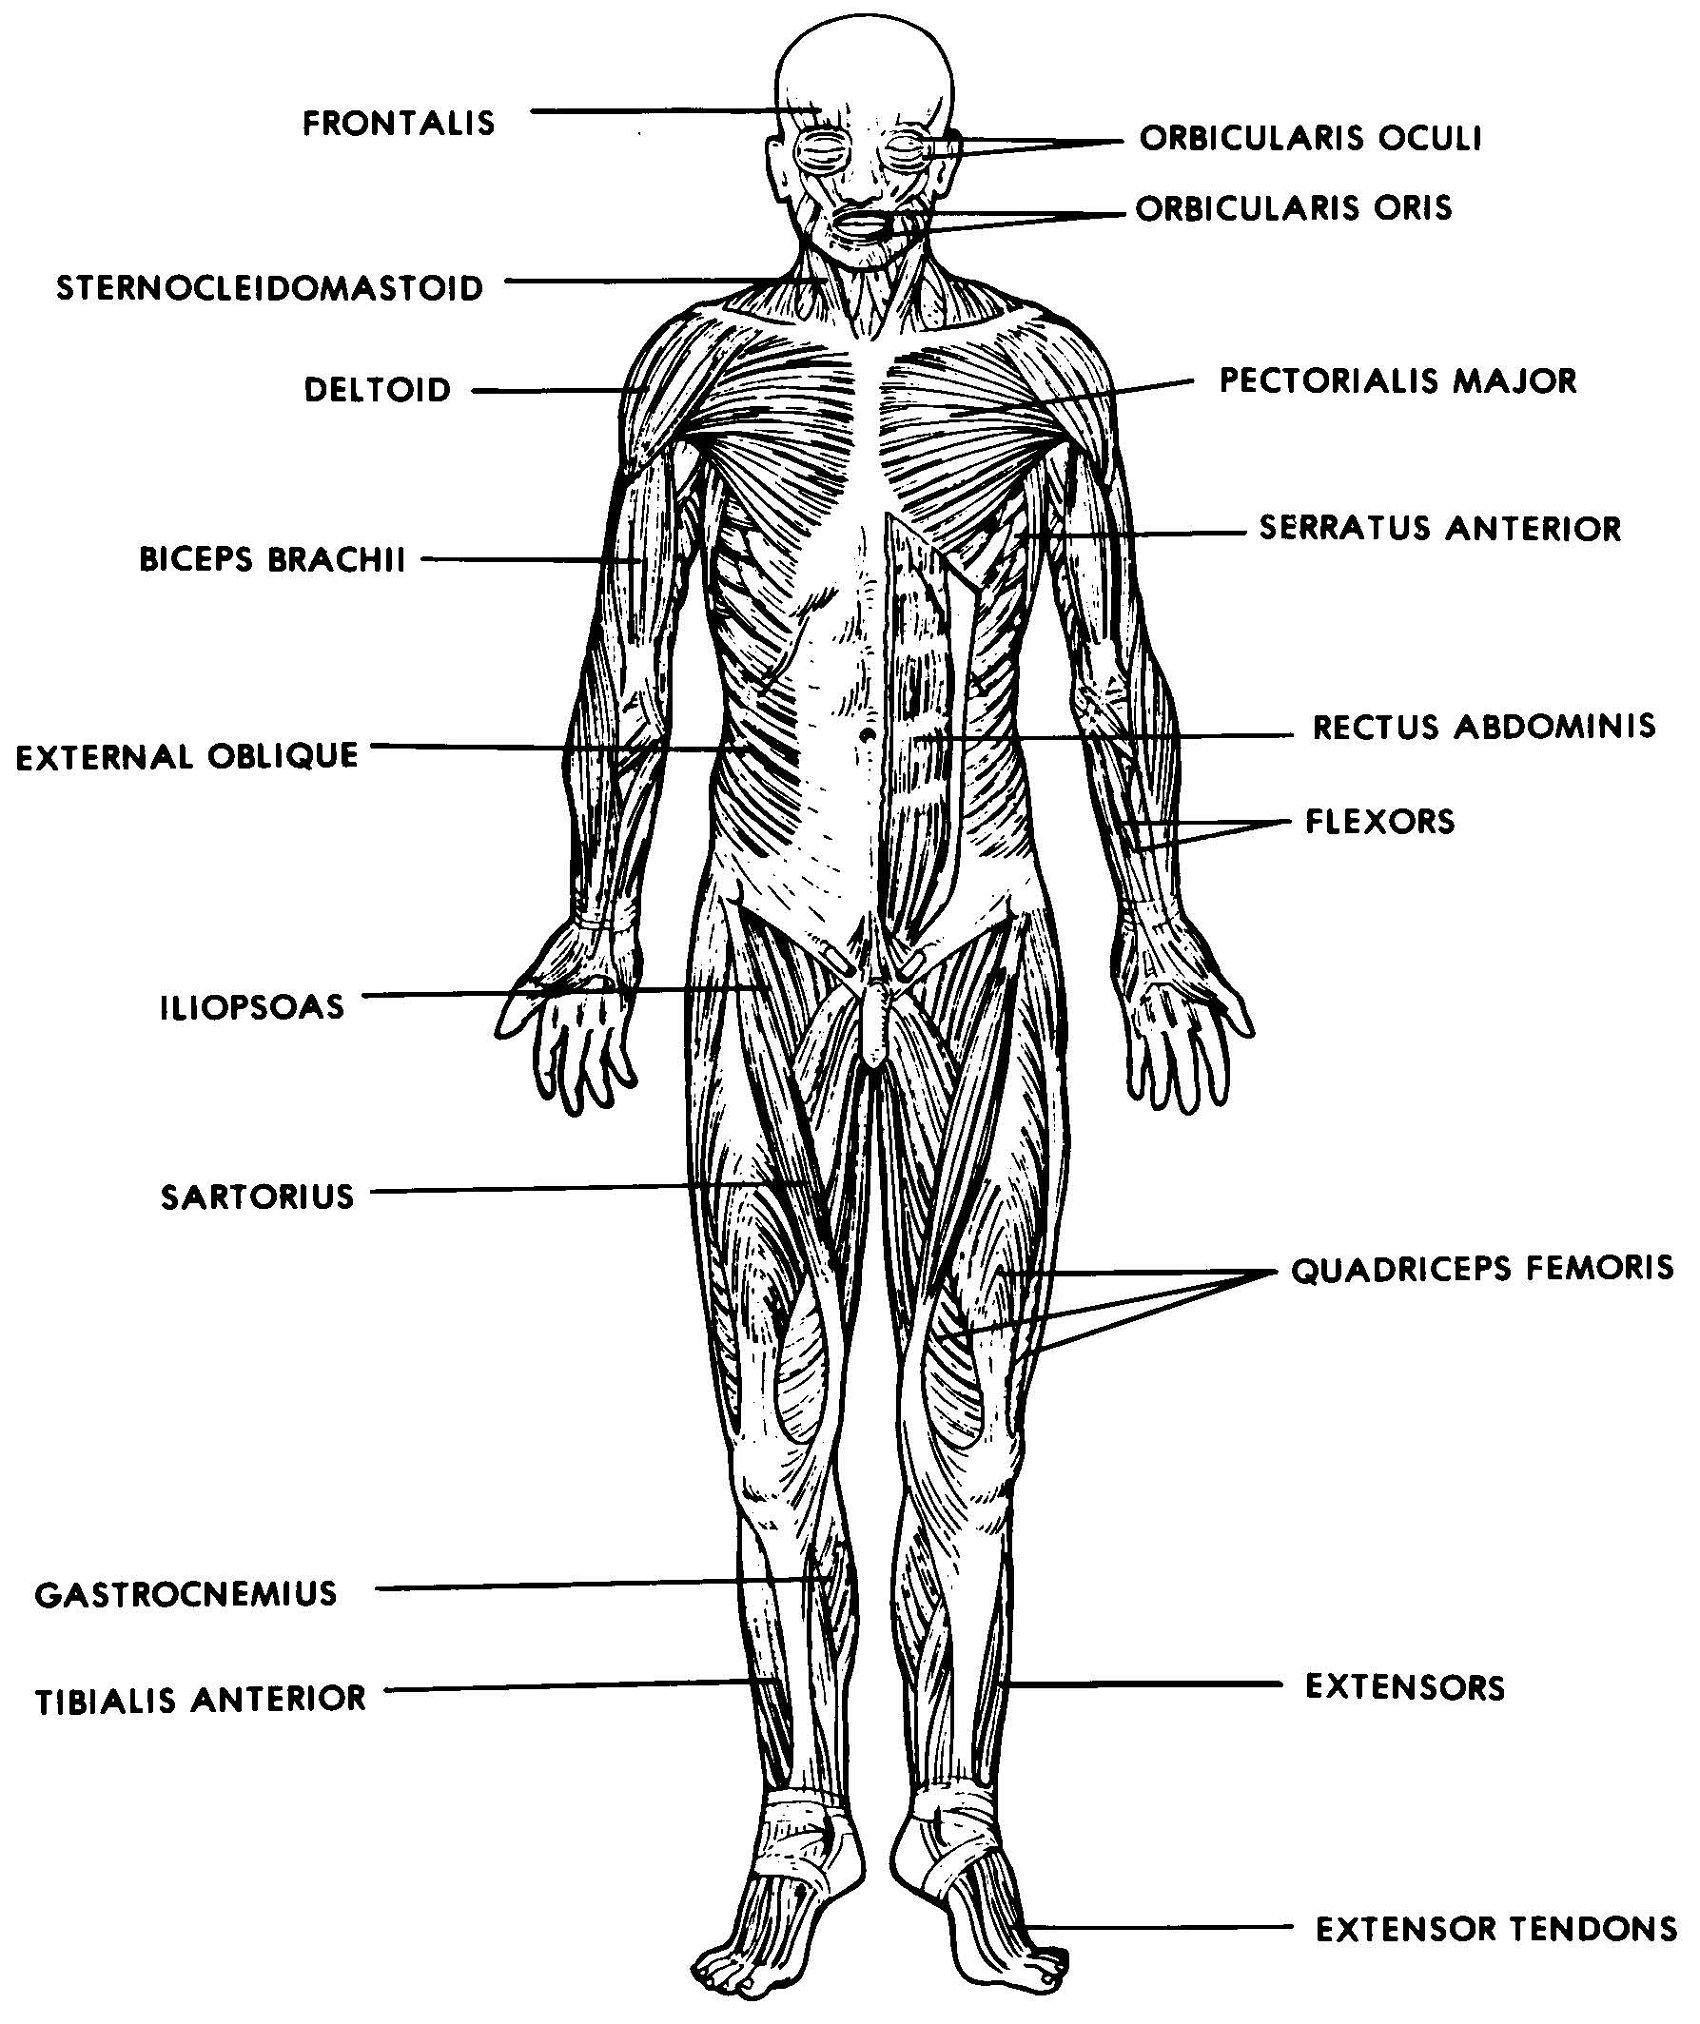 Muscular System Worksheet In 2020 Muscular System Muscular System Labeled Human Muscle Anatomy